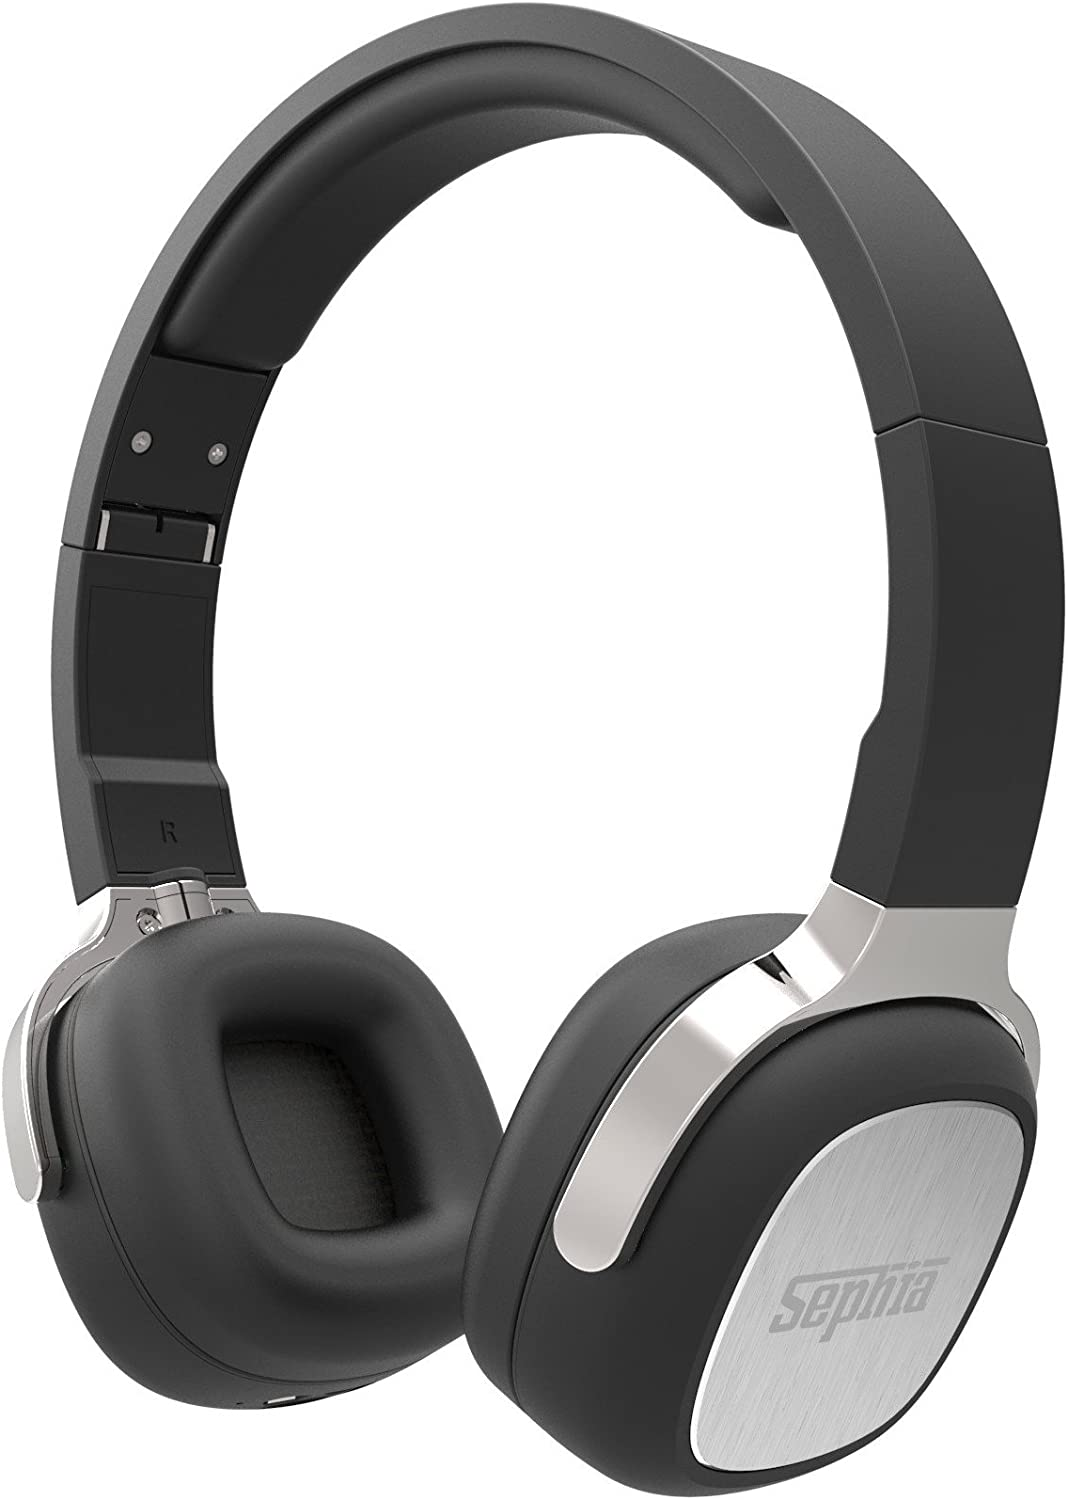 Sephia SX16 Wireless Bluetooth Headphones, Foldable, On Ear, Stereo, Bass Driven Sound for iPhone, iPod, iPad, Samsung, Tablets etc Black